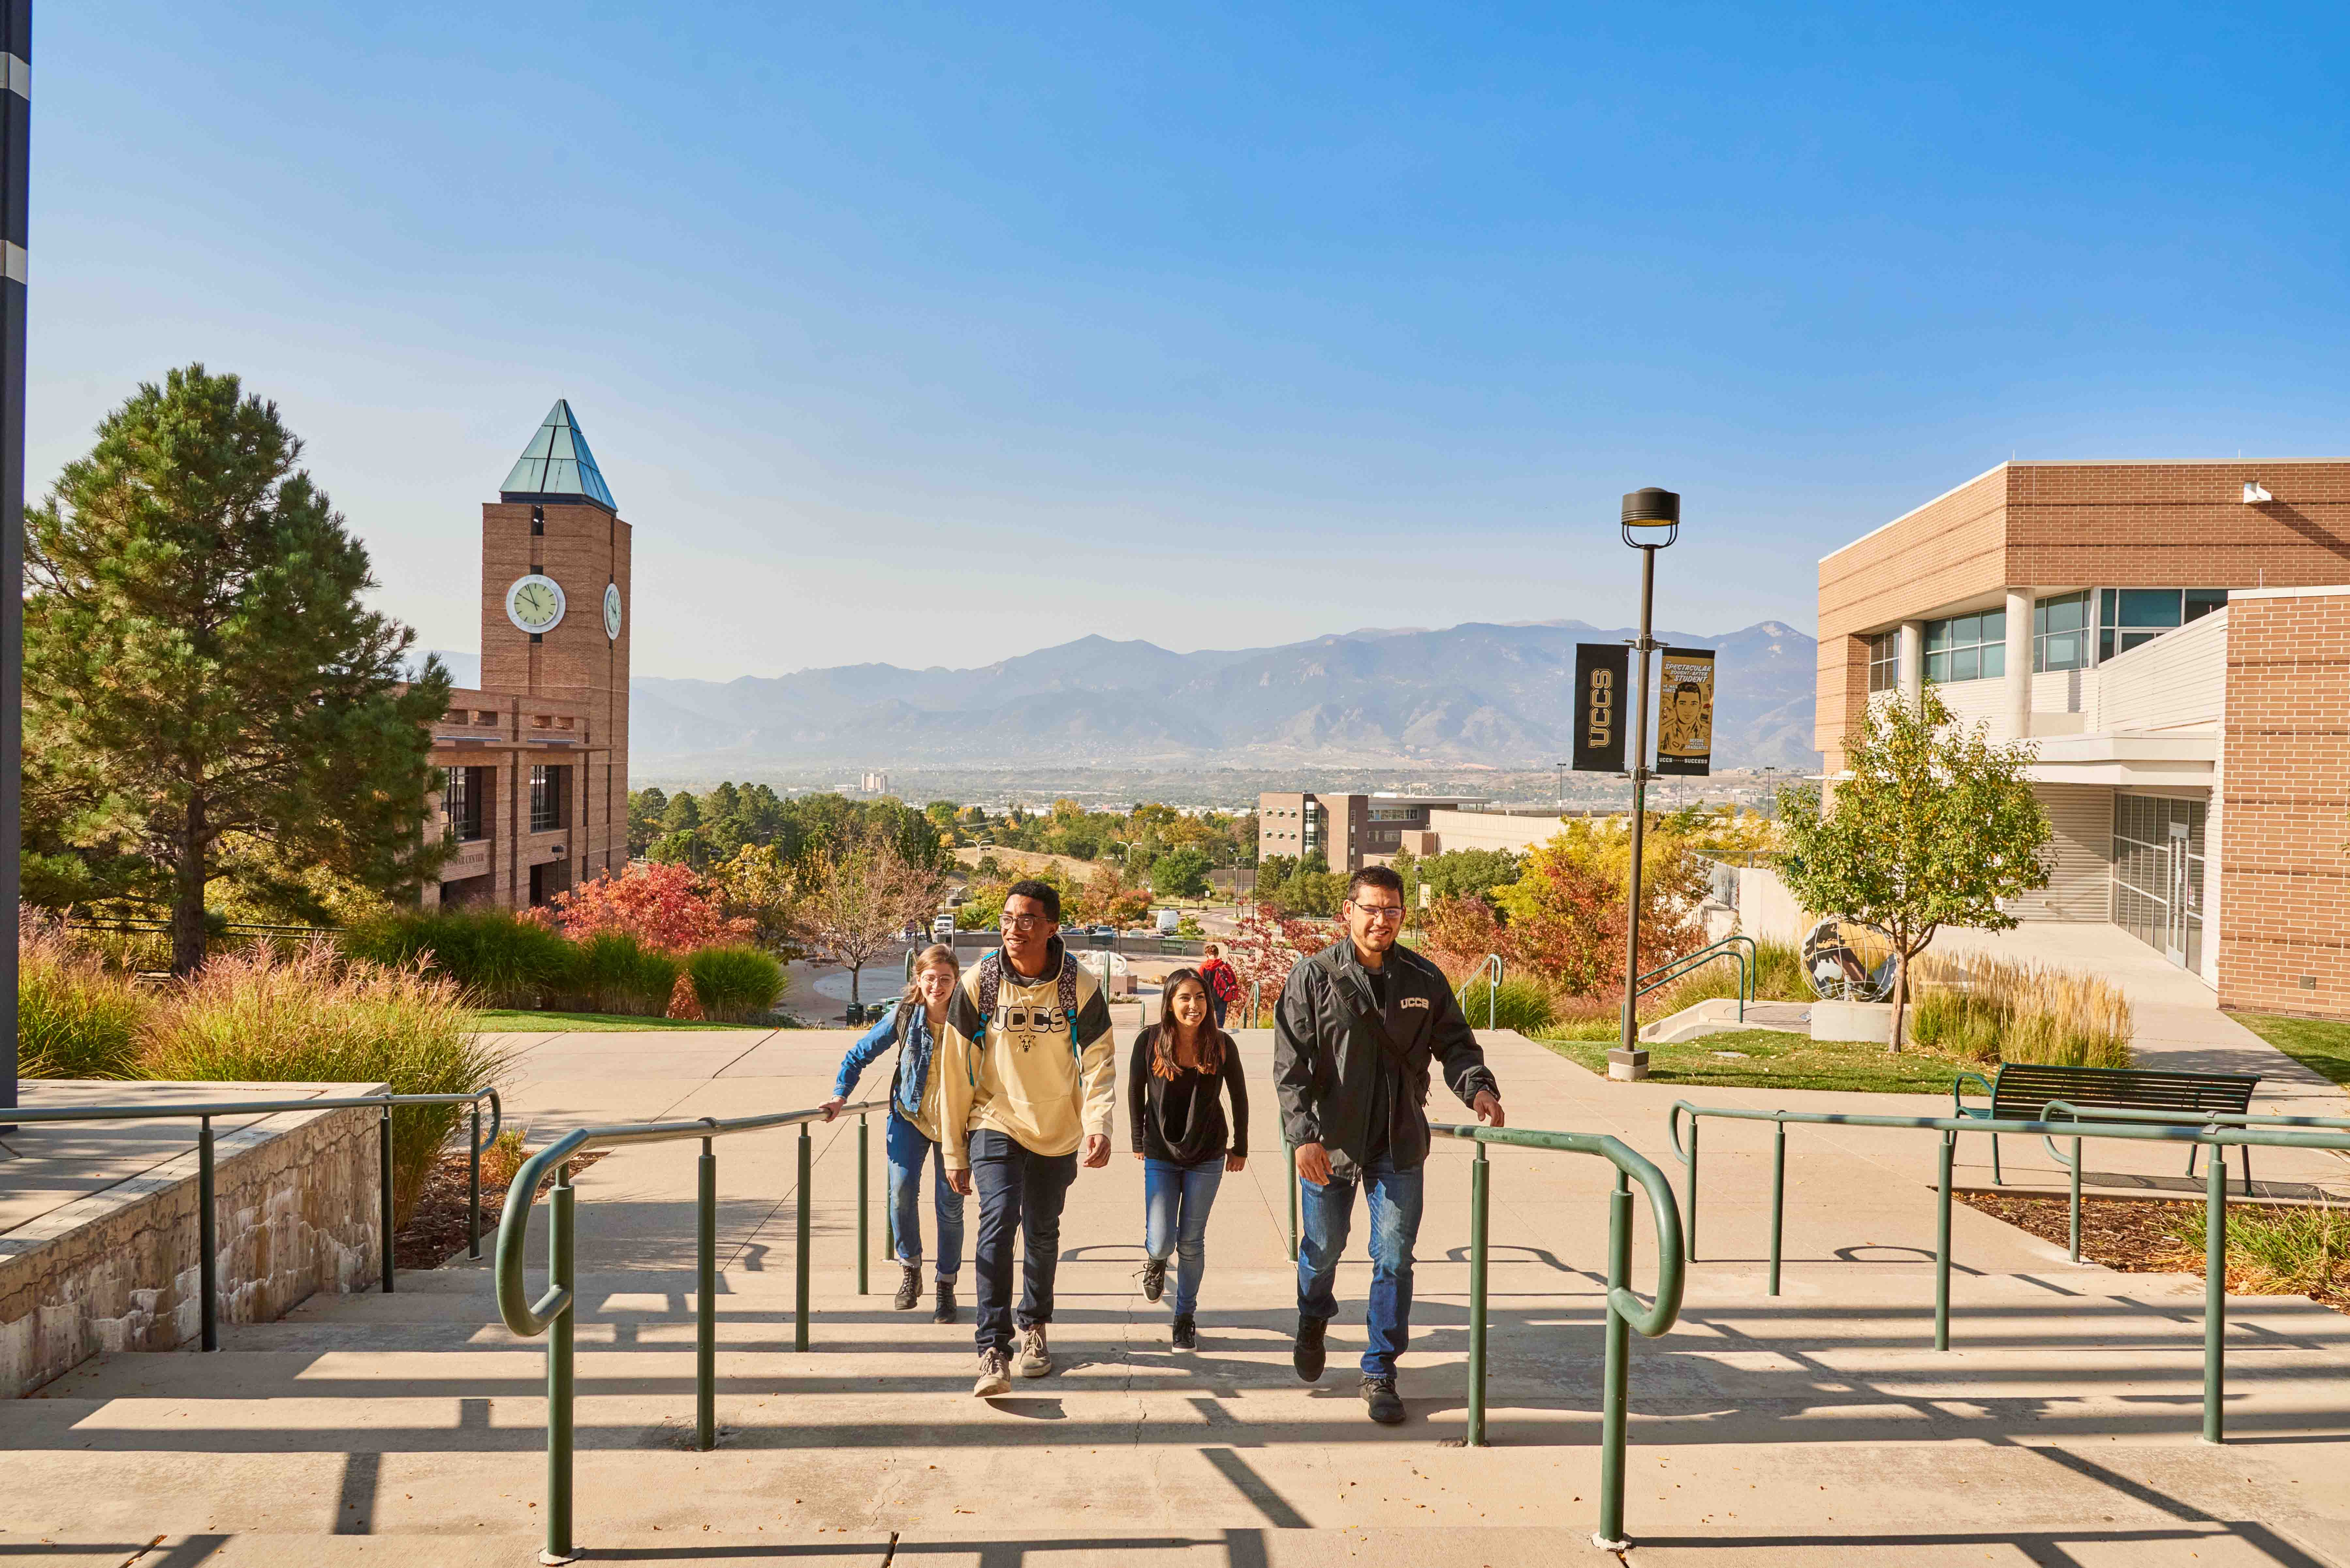 UCCS Campus and students walking up stairs